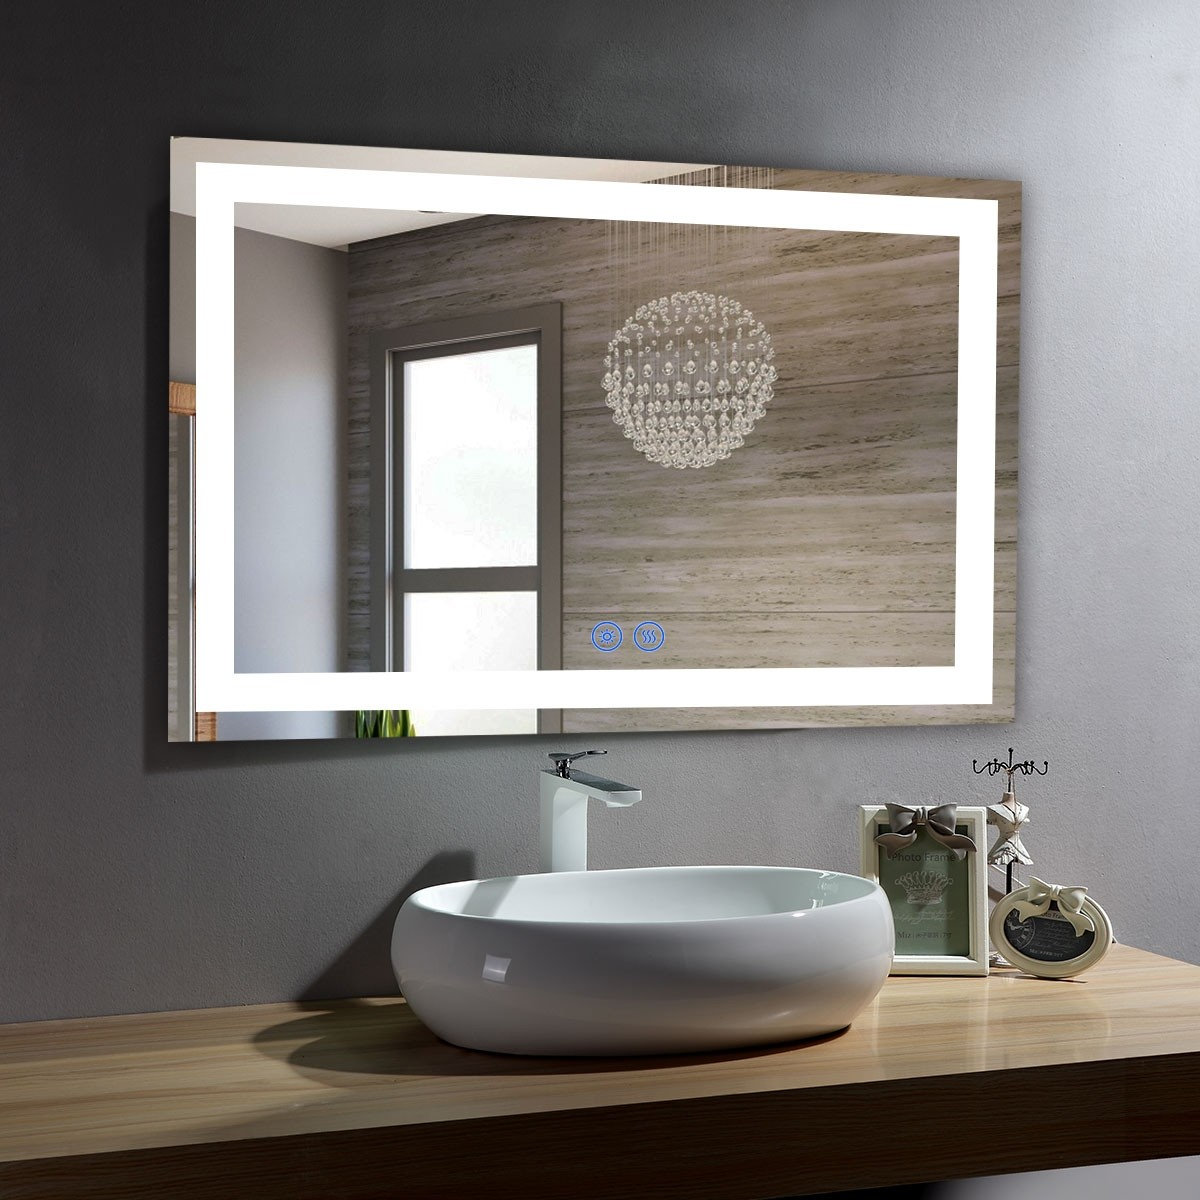 DECORAPORT 40 x 28 Inch LED Bathroom Mirror/Dress Mirror with Touch Button, Anti Fog, Dimmable, Vertical & Horizontal Mount (CT10-4028)